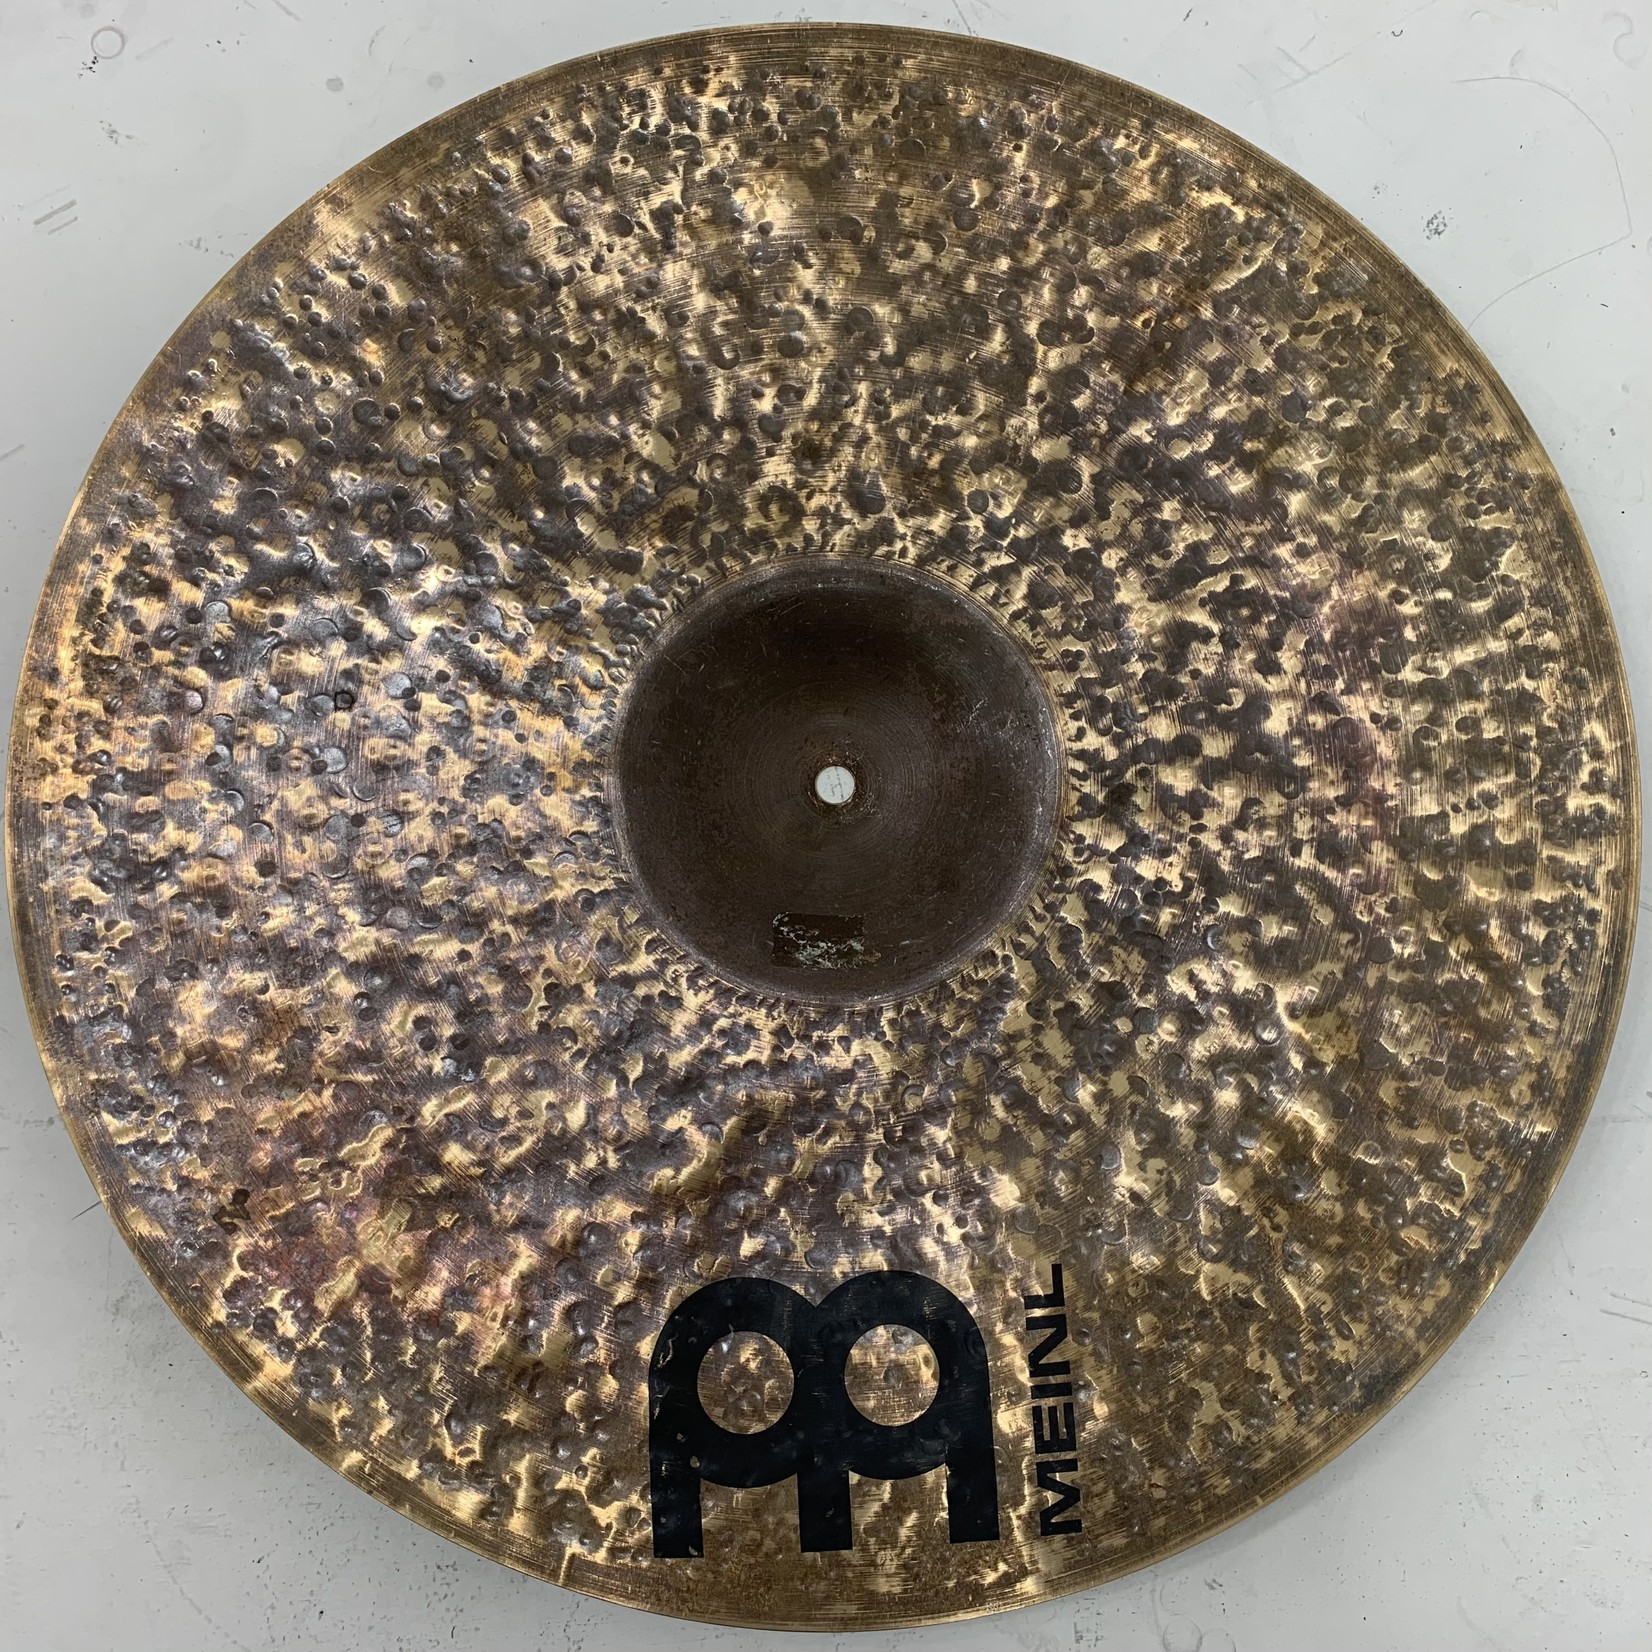 """USED Meinl Byzance 20"""" Raw Bell Ride Cymbal (Michael Wagener Collection)"""